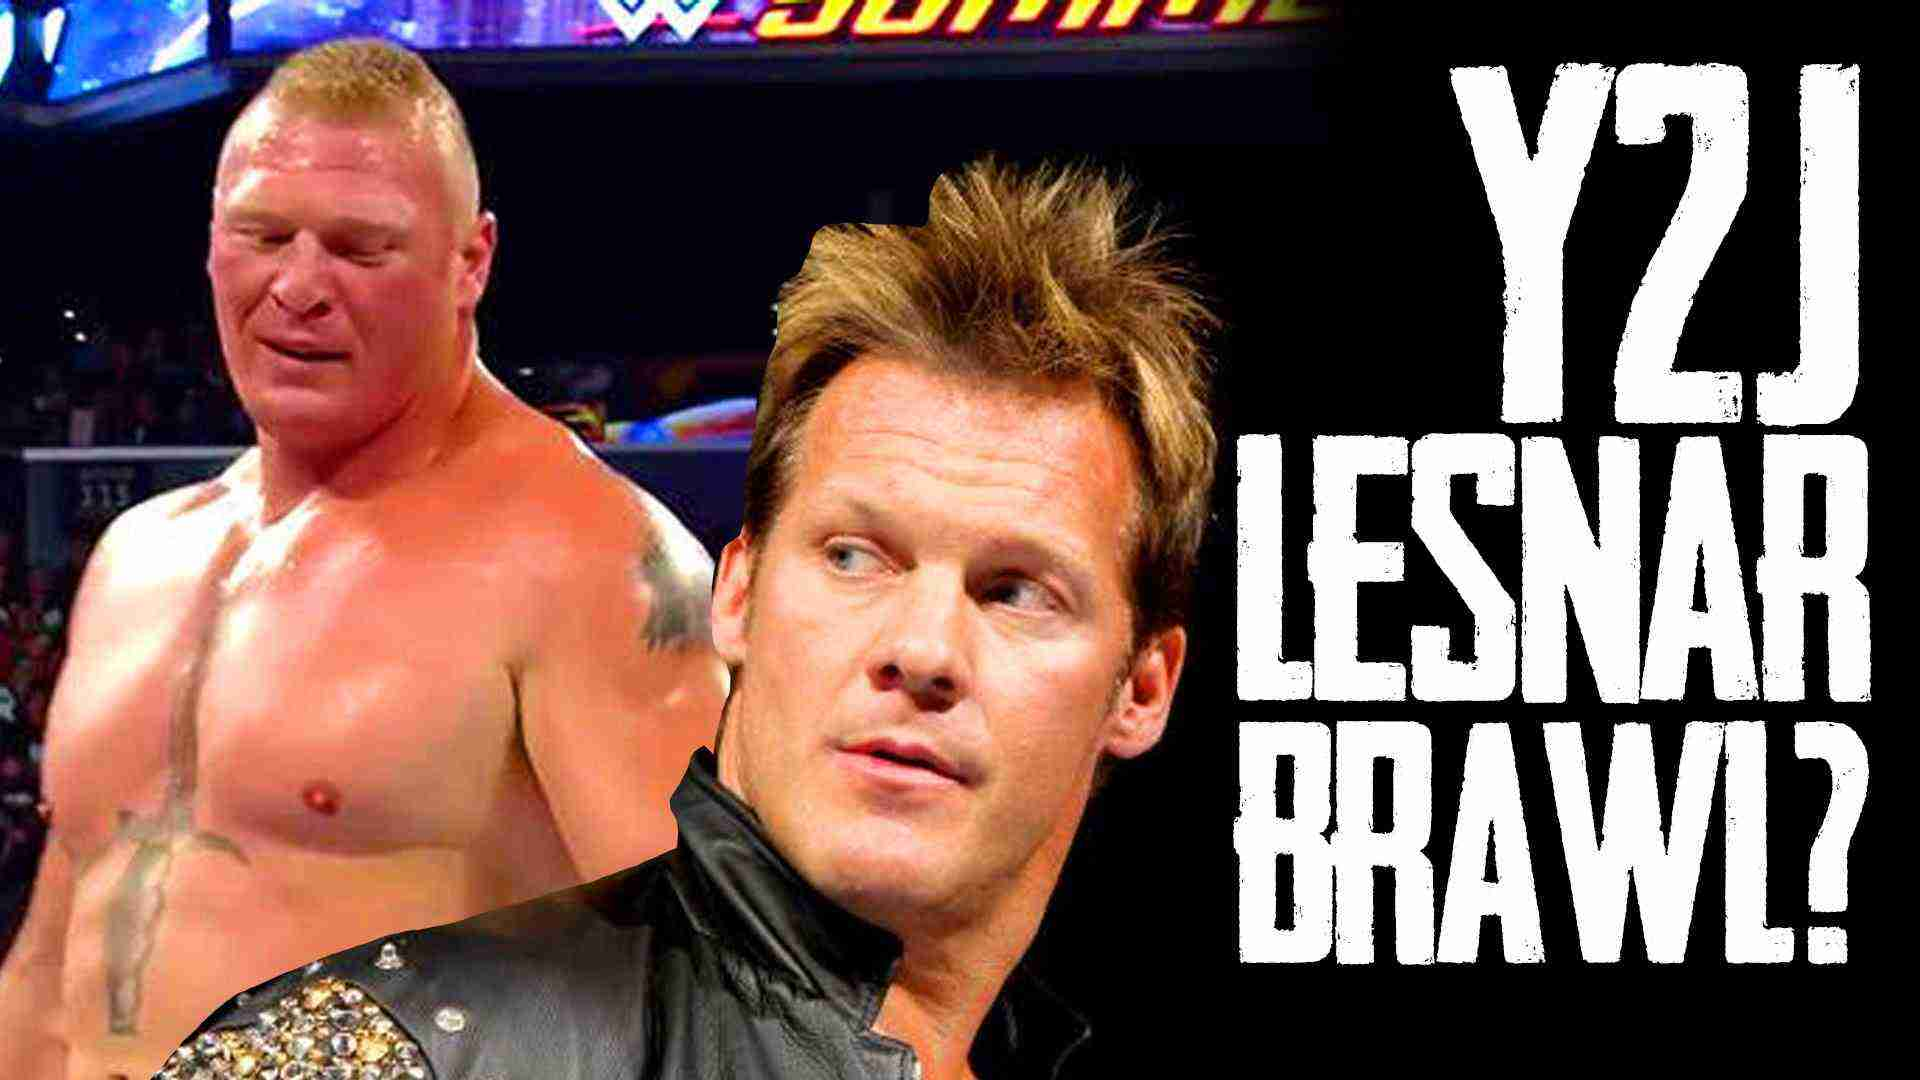 LESNAR AND JERICHO BRAWL BACKSTAGE? (WWE Raw Recap & Results 8/22/16 w/ Steve and Larson)